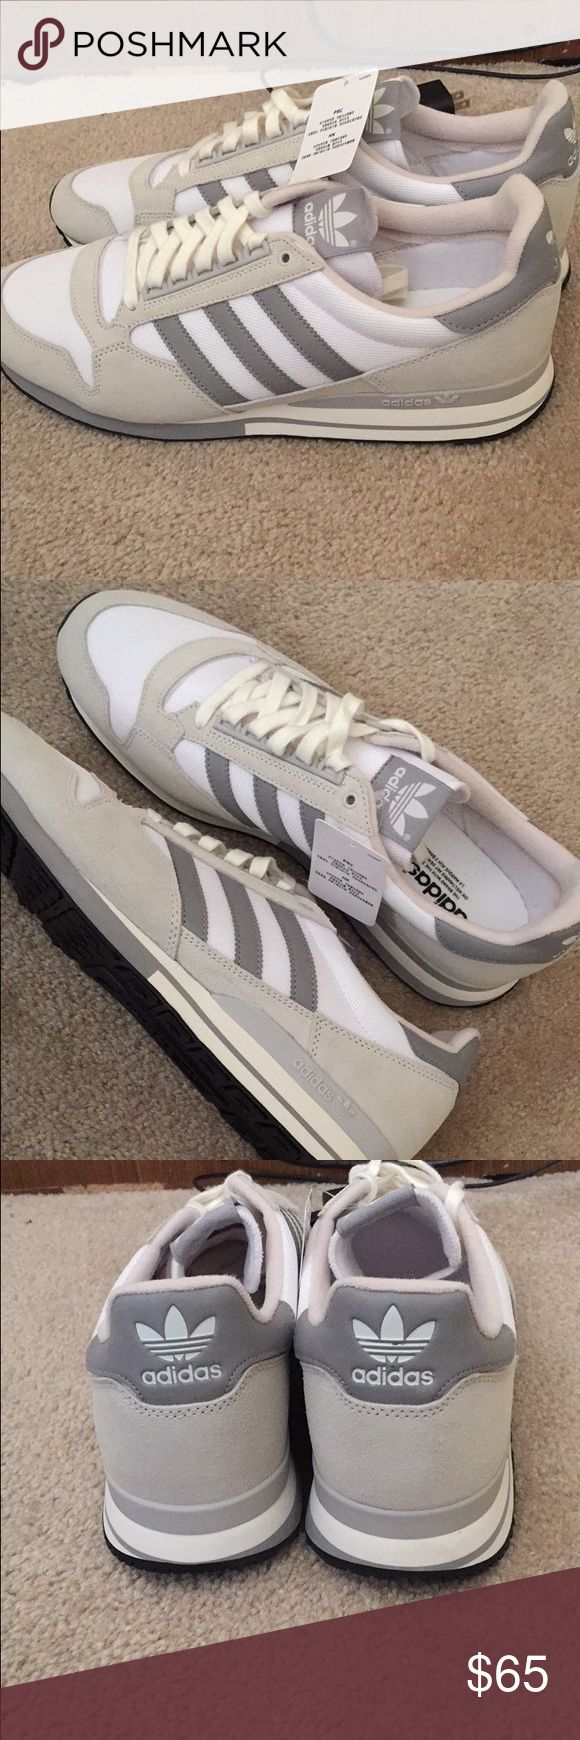 Brand new ZX 700 size 12 brand new men Adidas ZX 700 brand new Adidas Shoes Sneakers